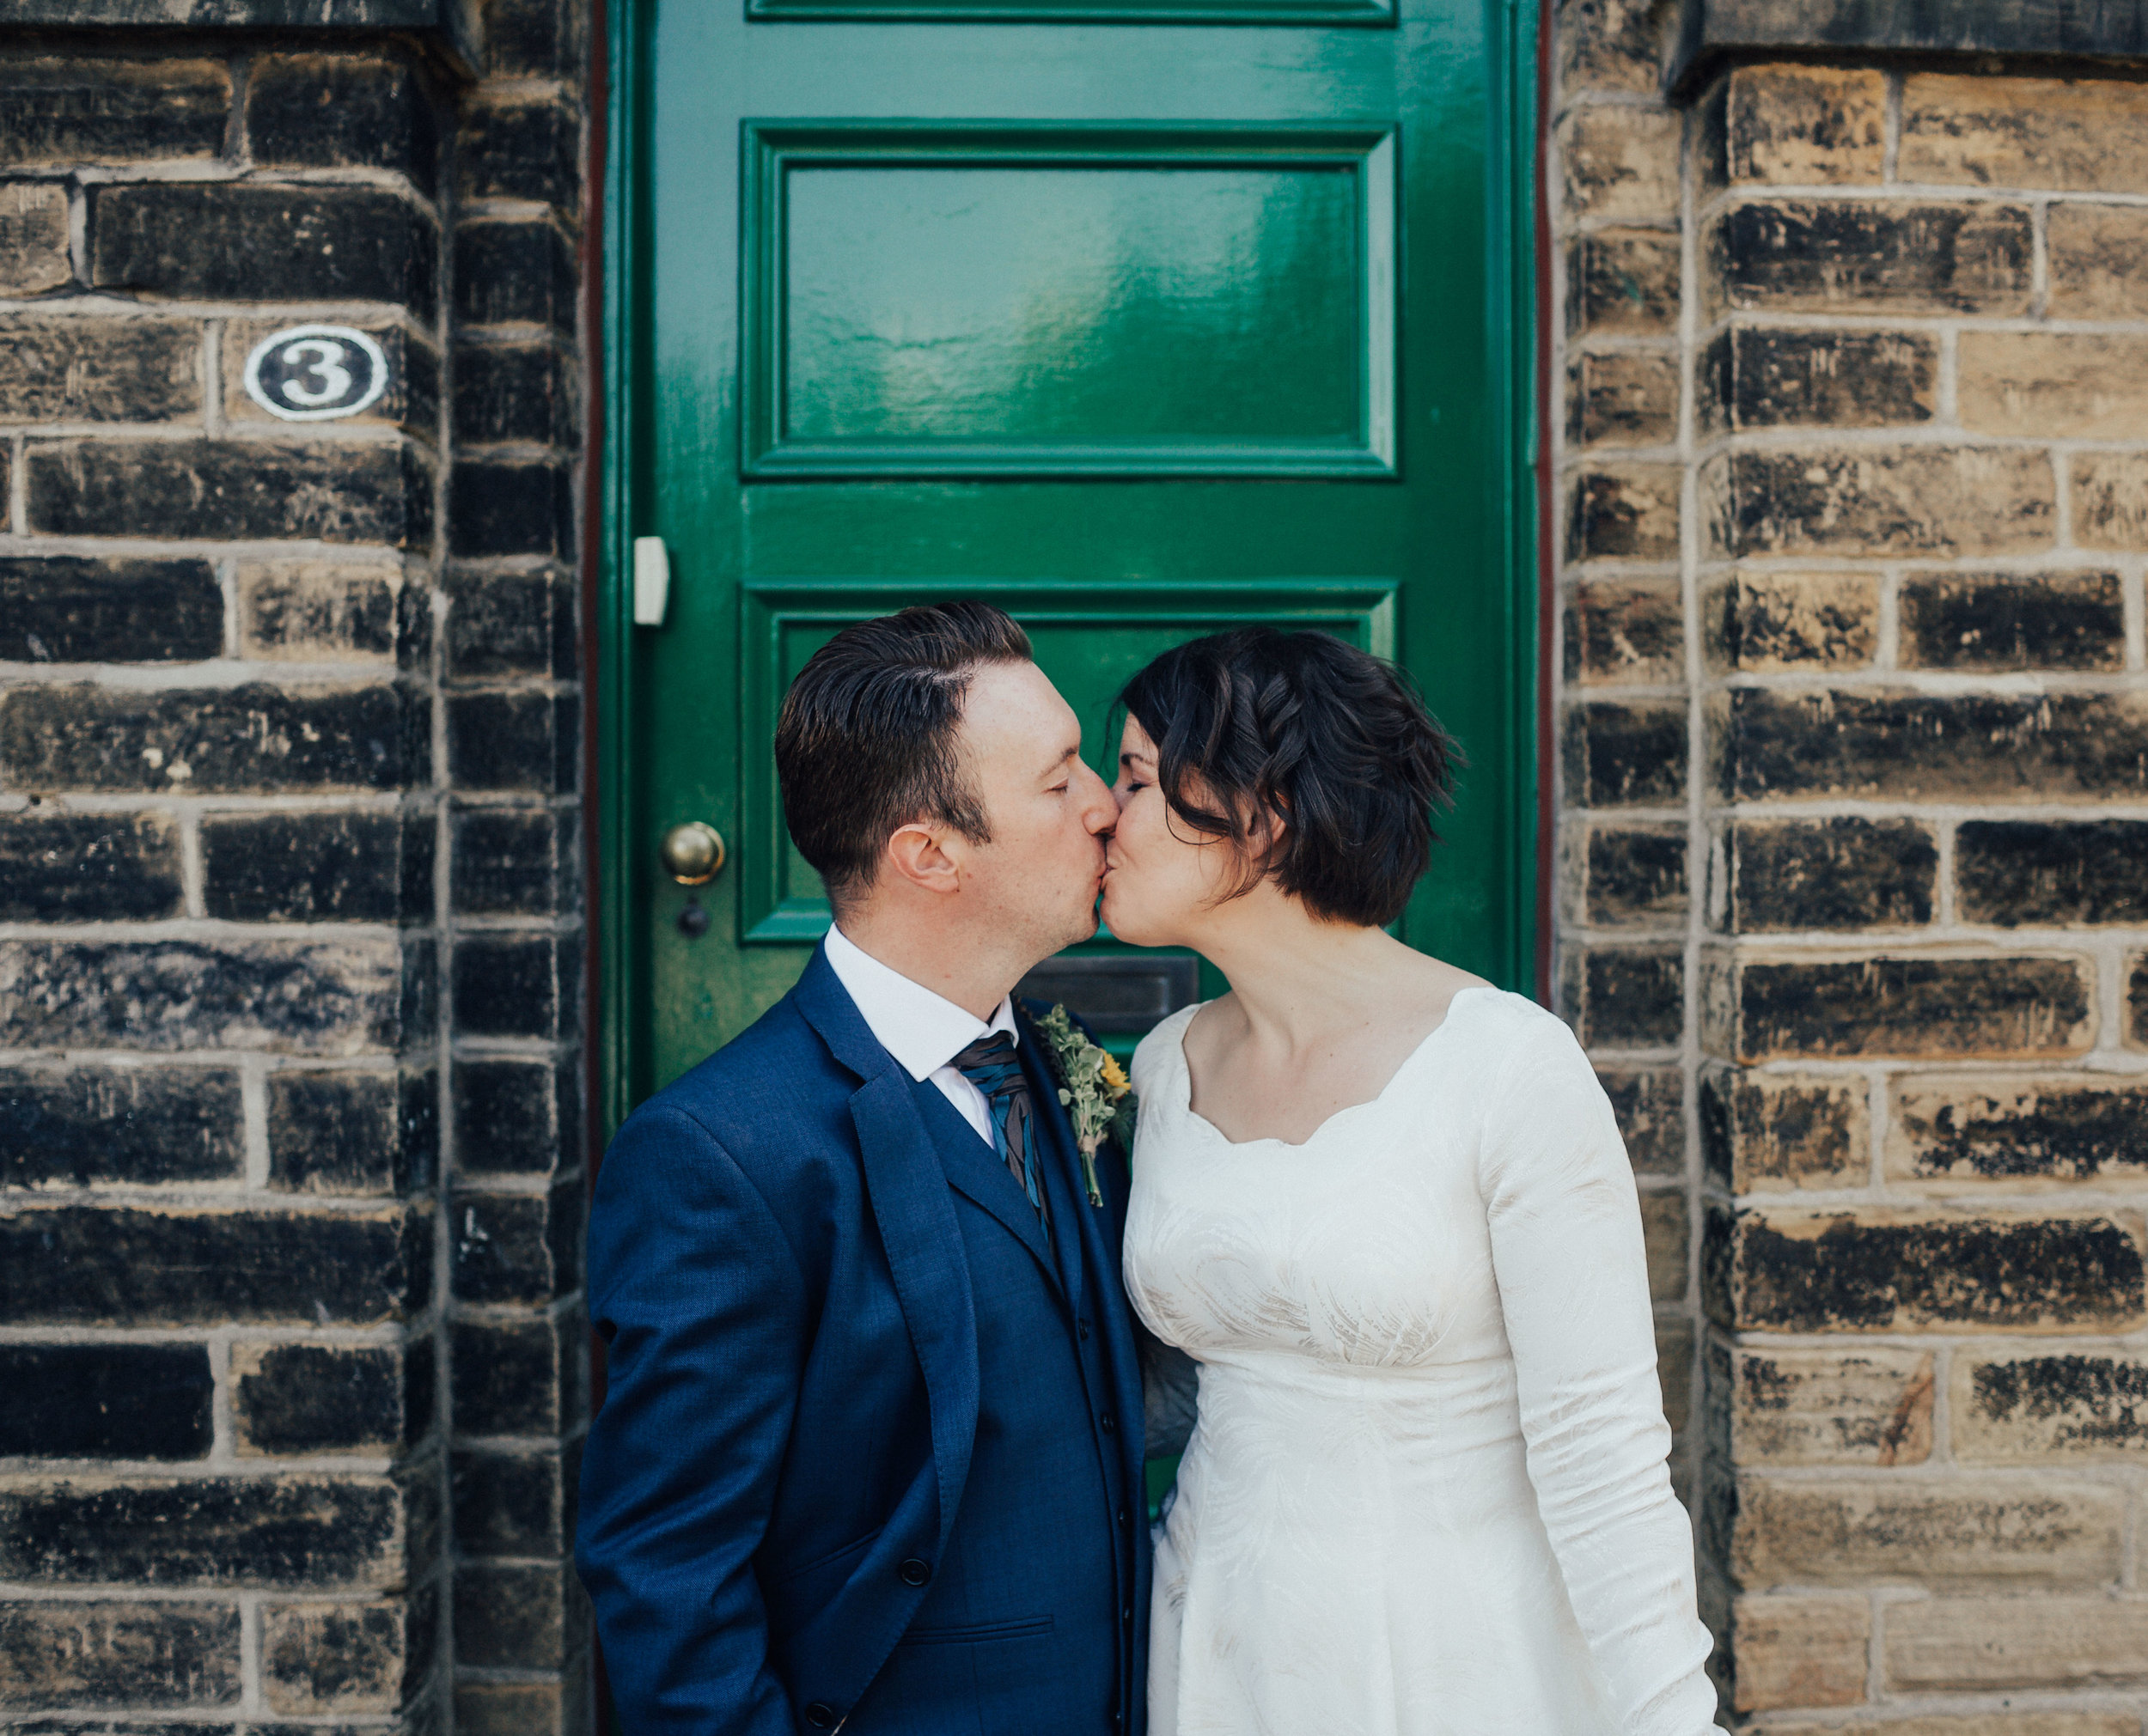 VICTORIA_HALL_SALTAIRE_VINTAGE_YORKSHIRE_WEDDING_PJ_PHILLIPS_PHOTOGRAPHY_66.jpg